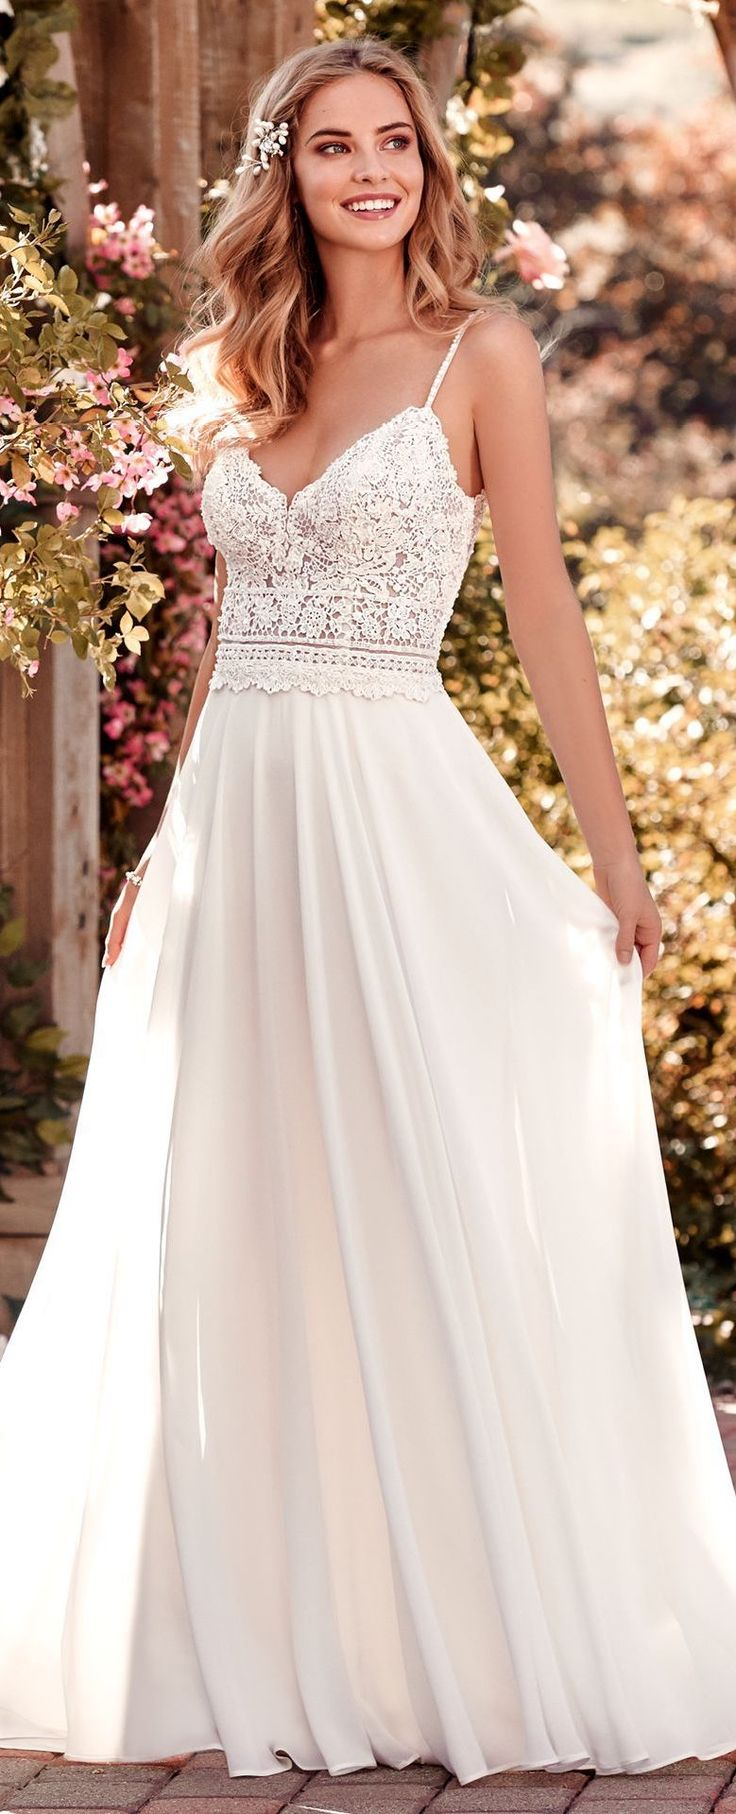 Wedding dress by Rebecca Ingram from Maggie Sottero. Chiffon boho-inspired wedding dress features a sheer bodice accented in beaded lace atop an Aria Chiffon skirt. A V-neck, V-back, and beaded spaghetti straps complete this sheath gown. Finished with cry